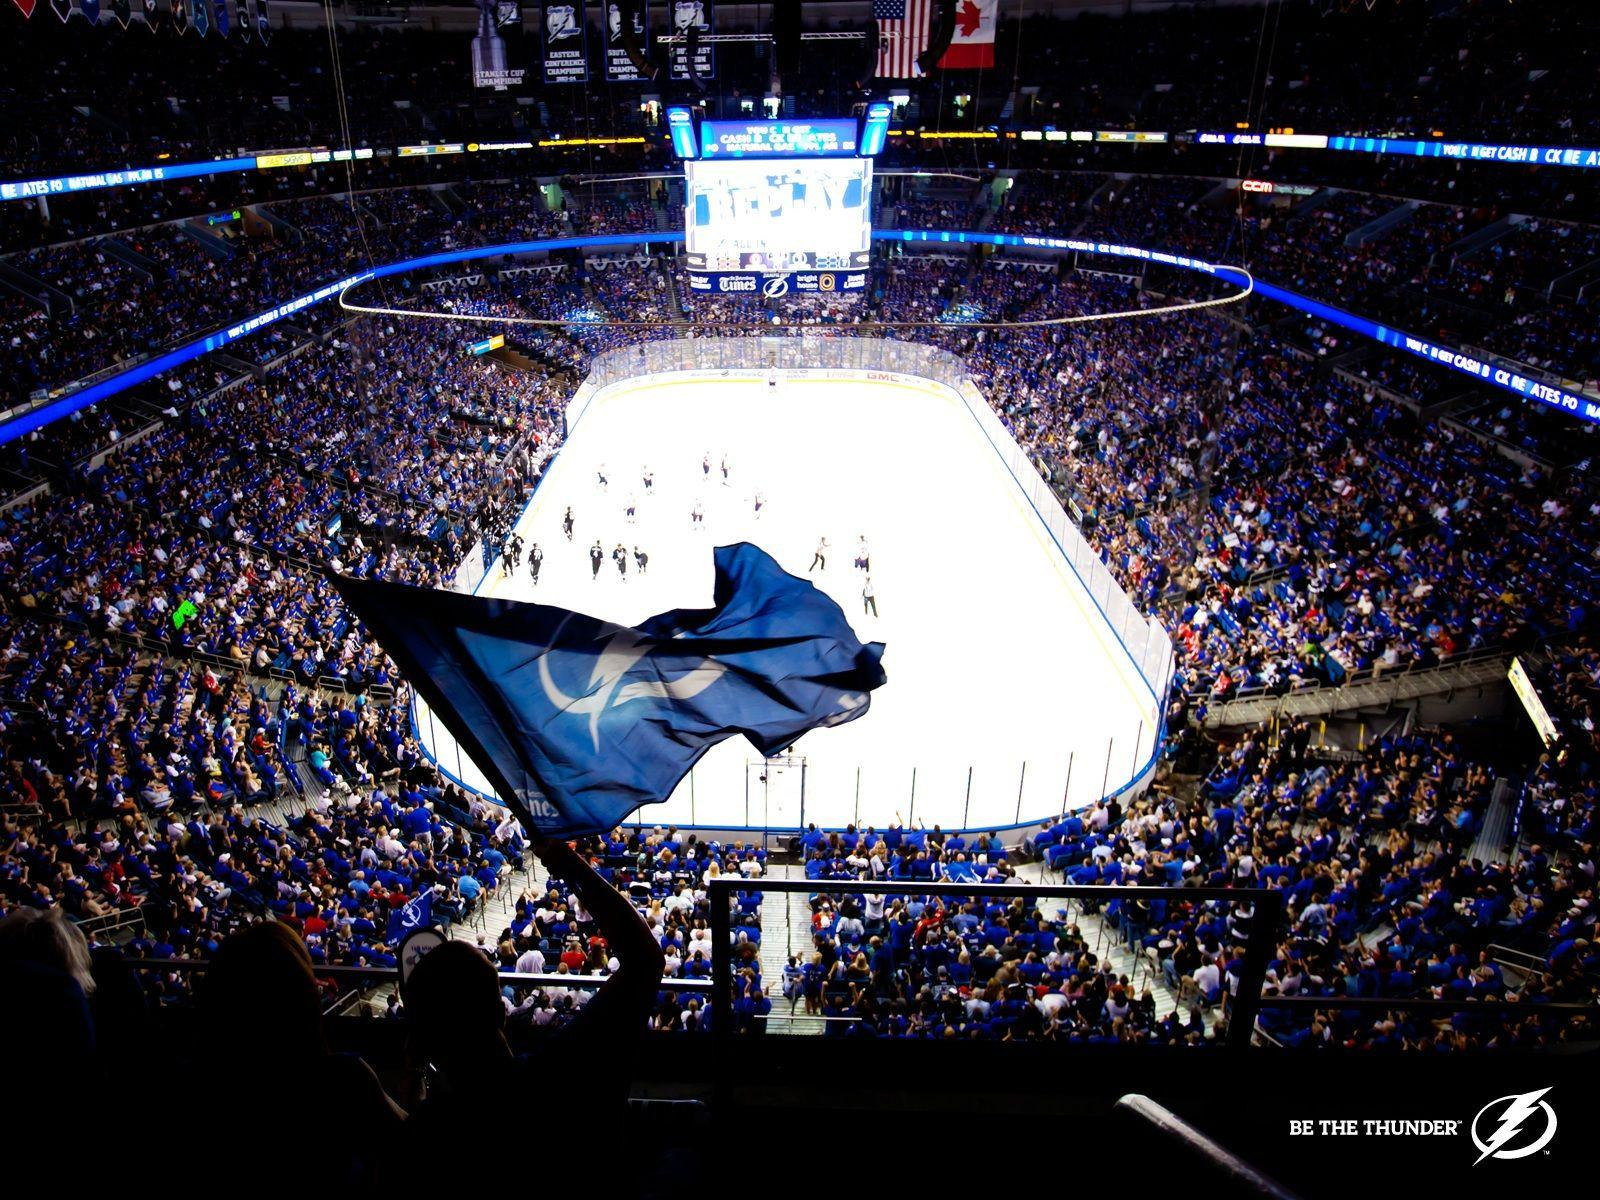 Tampa Bay Lightning image Be the Thunder HD wallpapers and